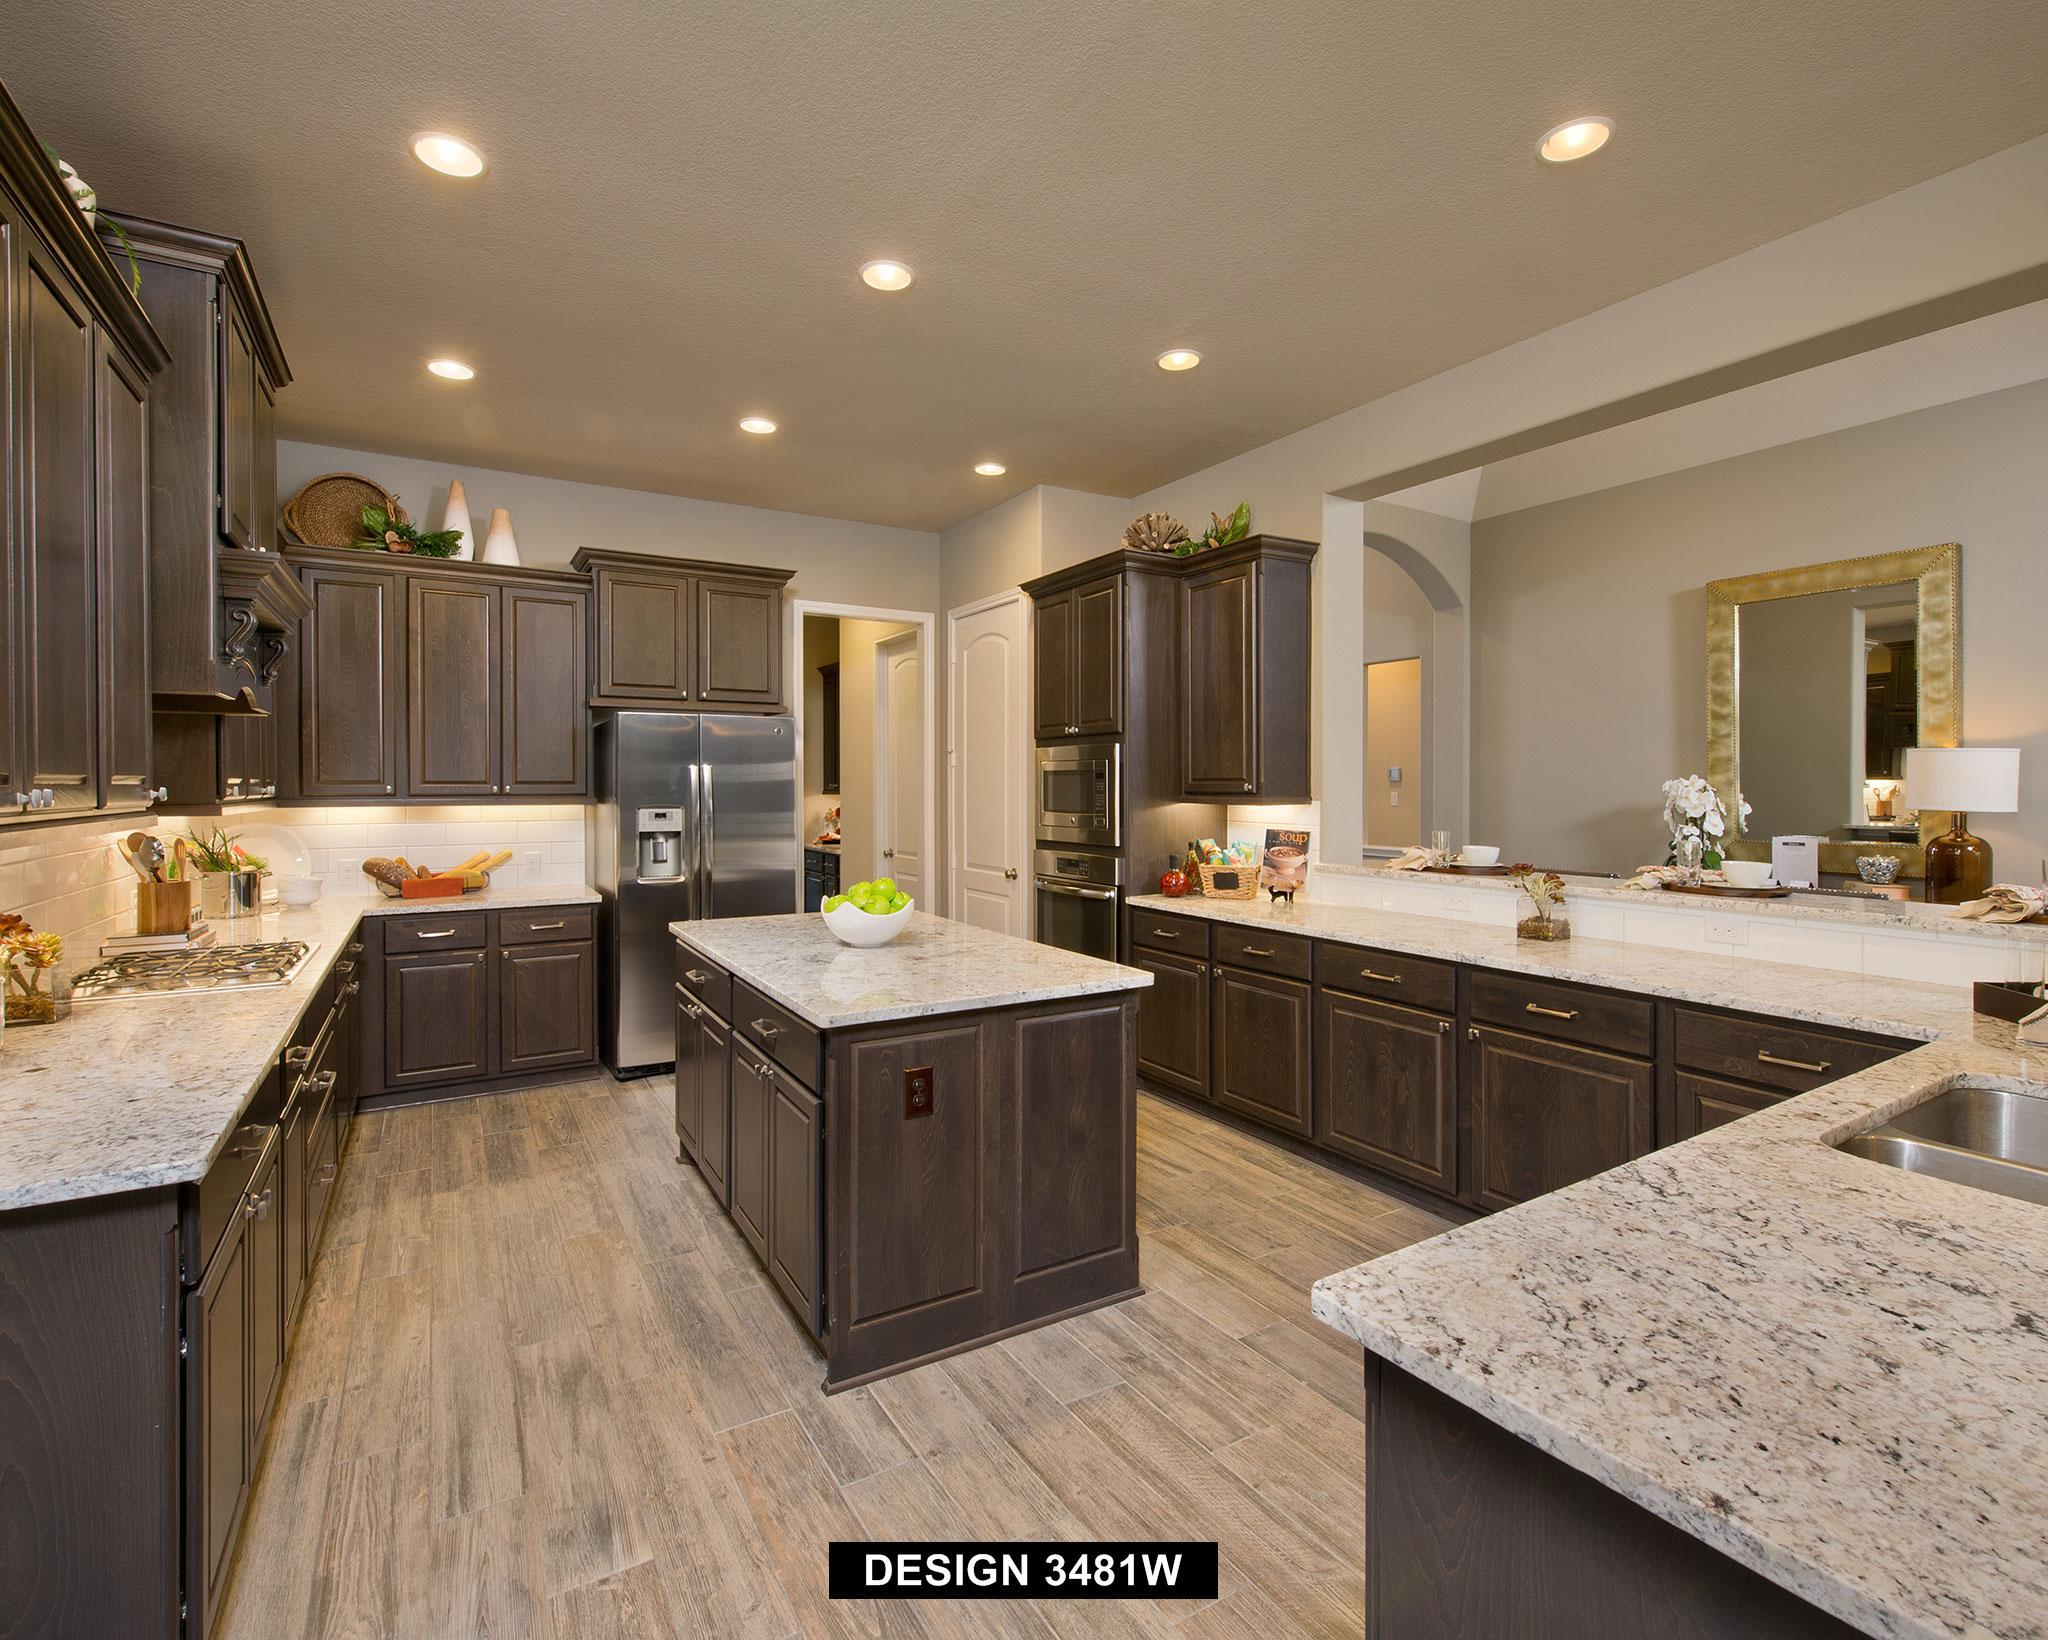 Kitchen-in-3481W-at-Meridiana 70'-in-Iowa Colony